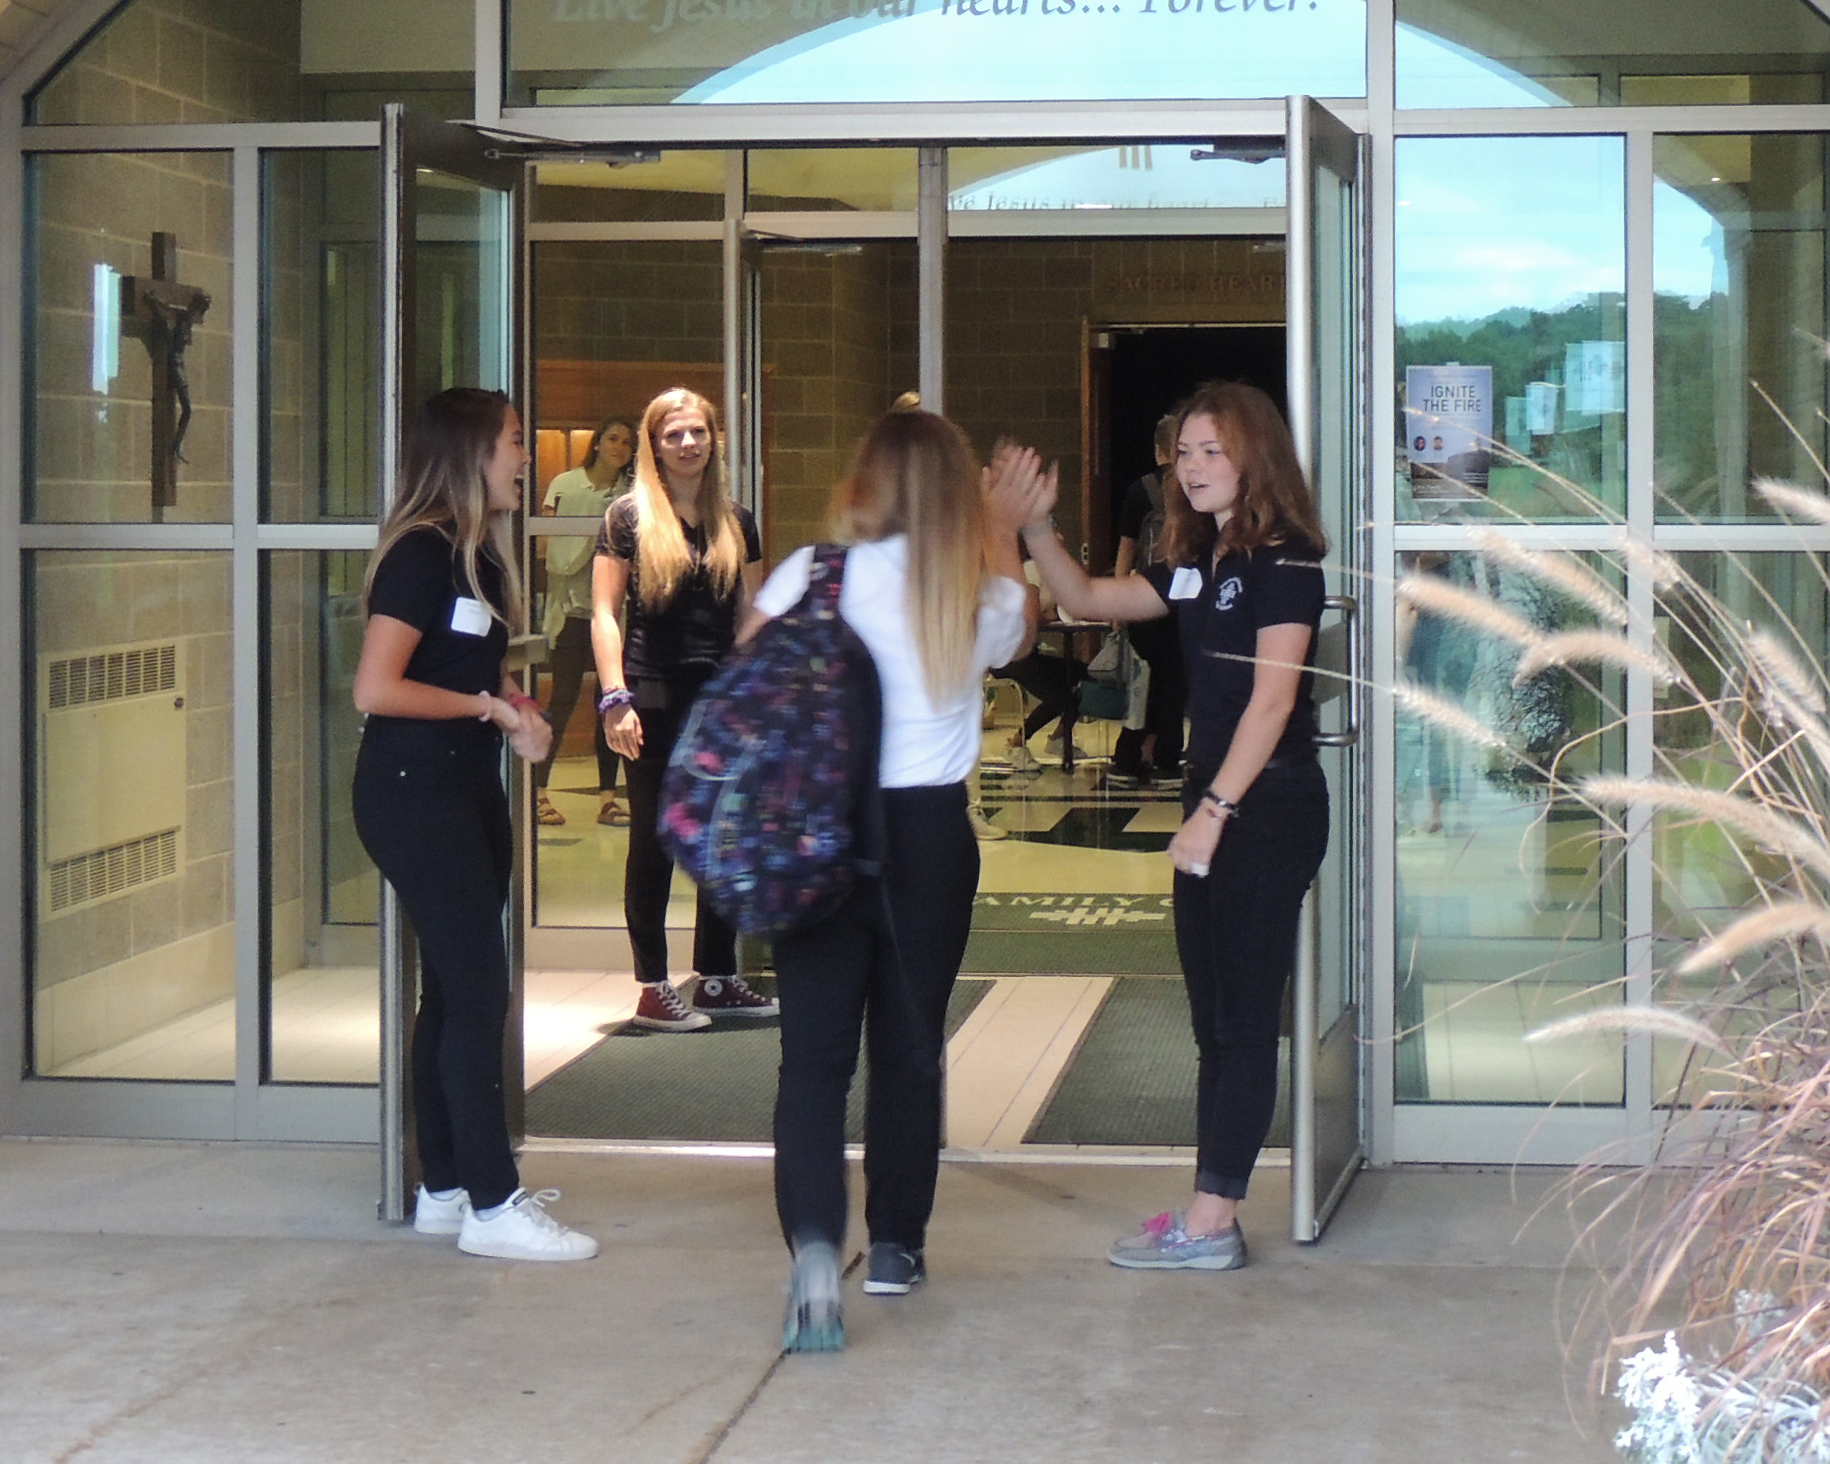 Fire Shadow Day: 5 Reasons to Experience Holy Family Catholic High School Featured Image.